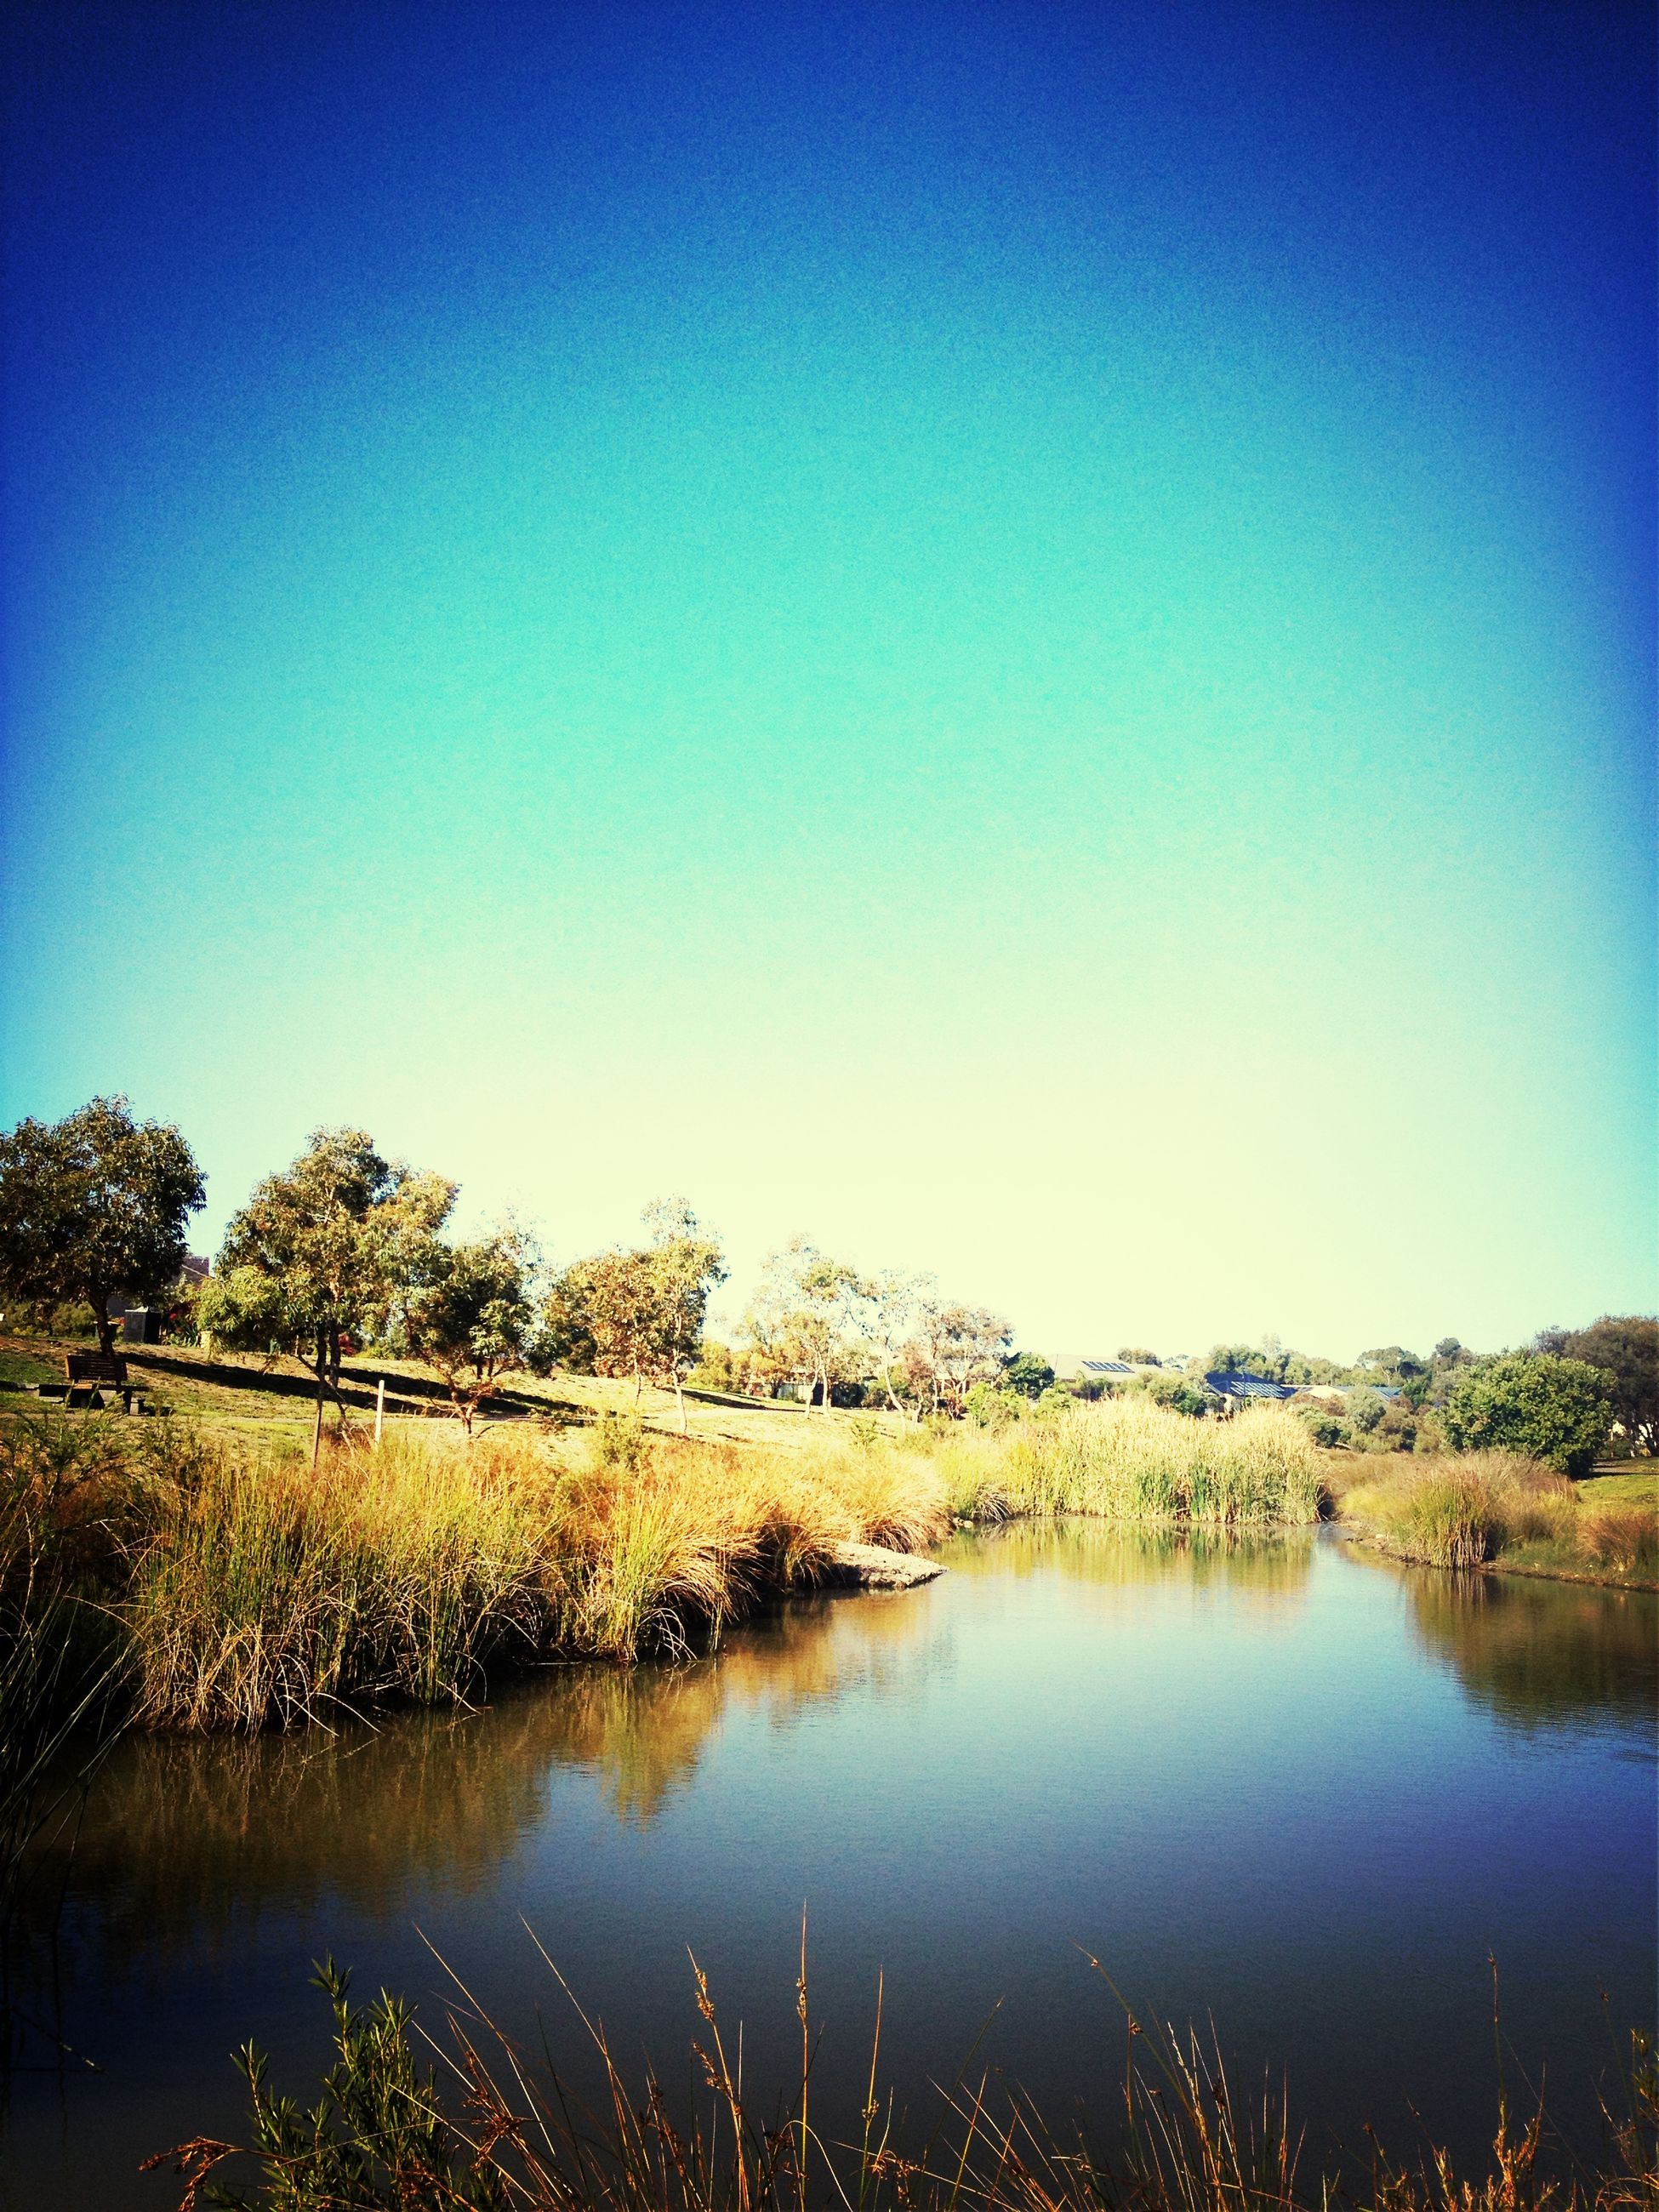 clear sky, water, blue, lake, reflection, copy space, tranquil scene, tranquility, scenics, beauty in nature, tree, waterfront, nature, standing water, calm, idyllic, countryside, lakeshore, non-urban scene, outdoors